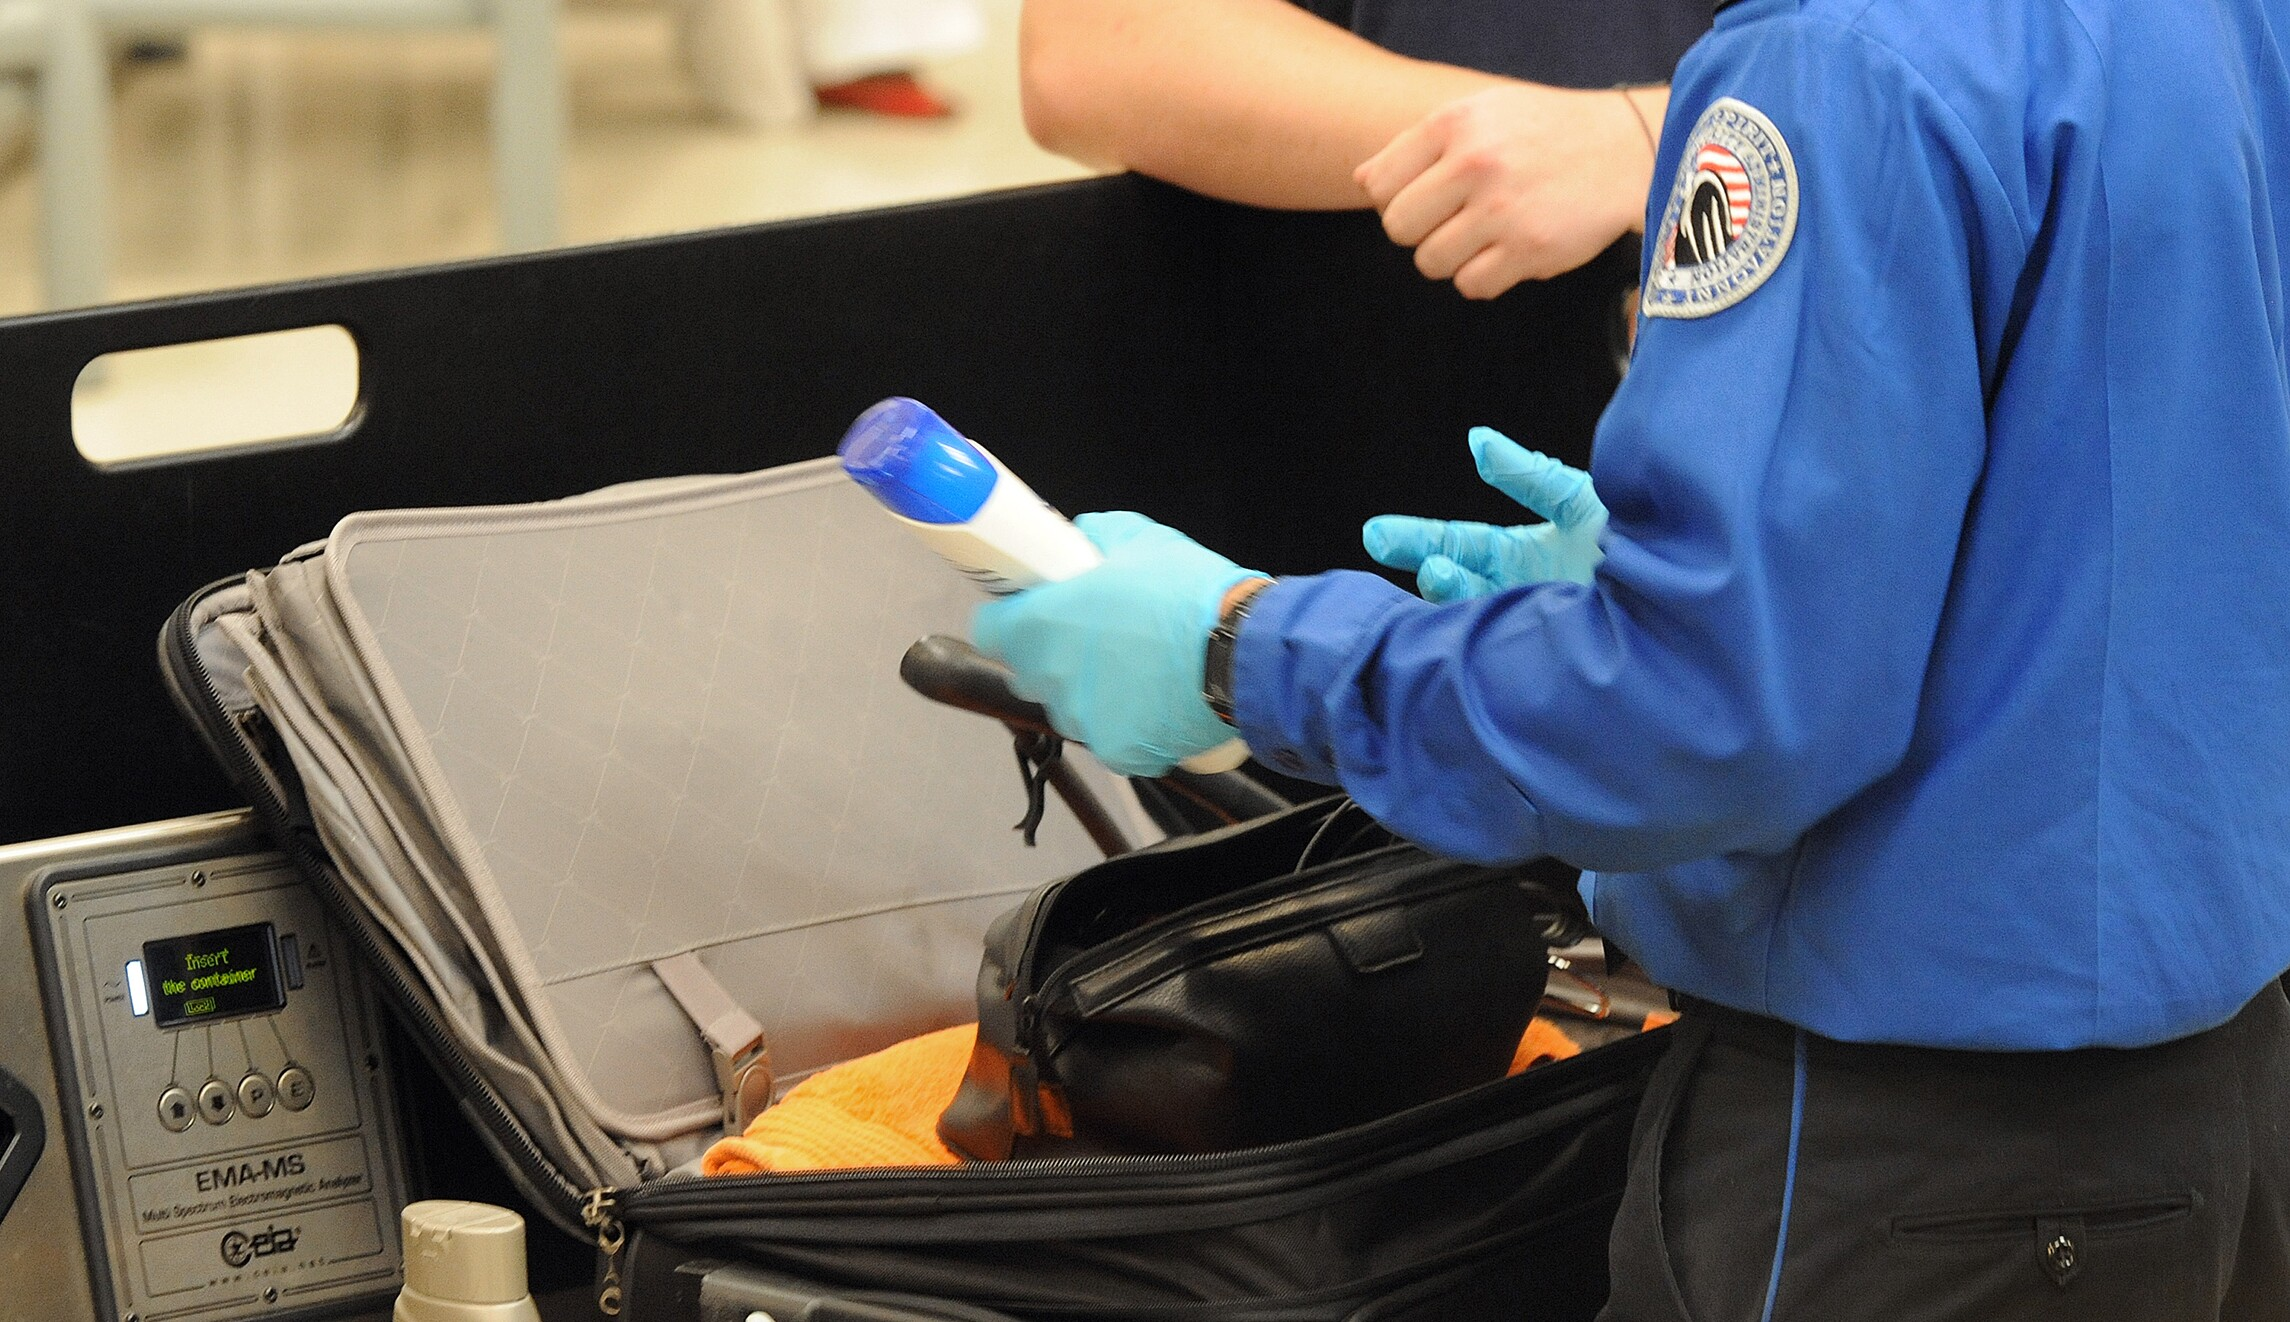 TSA's new security scanners could make removing liquids, electronics